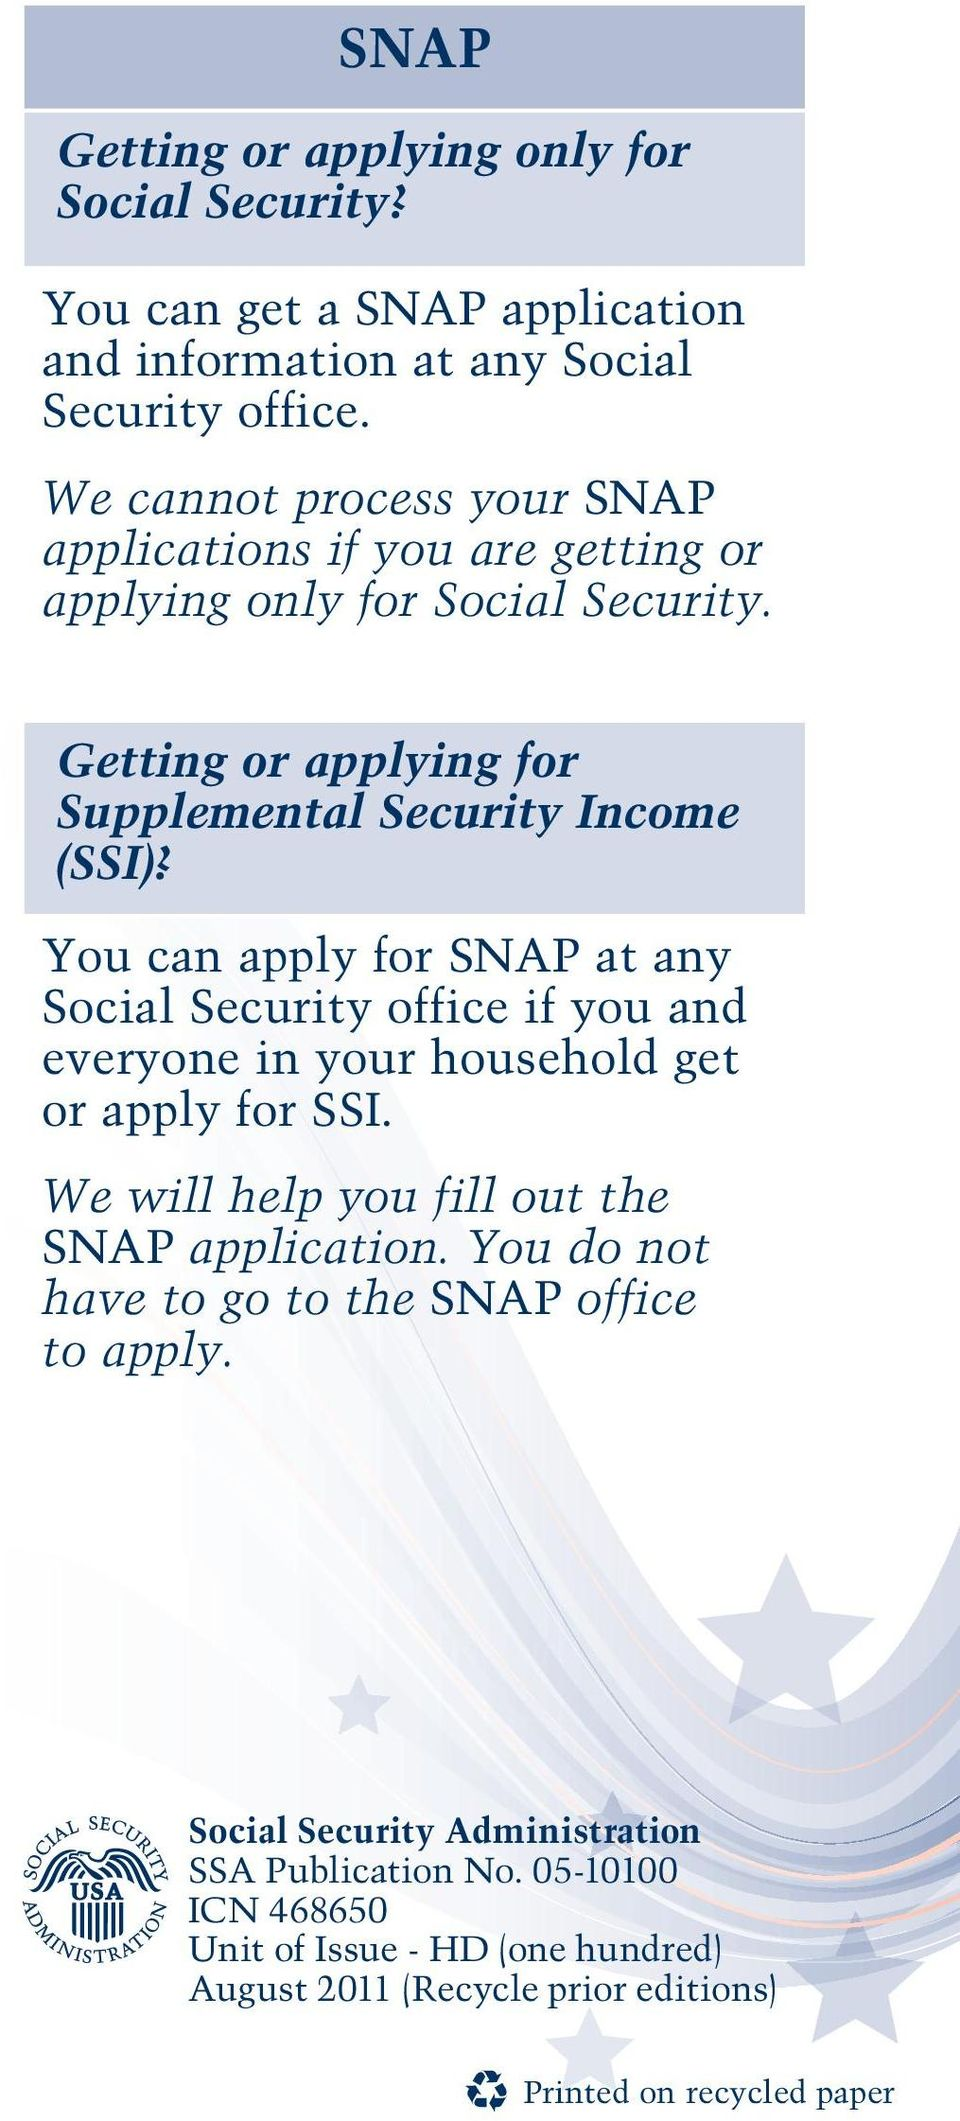 You can apply for SNAP at any Social Security office if you and everyone in your household get or apply for SSI. We will help you fill out the SNAP application.